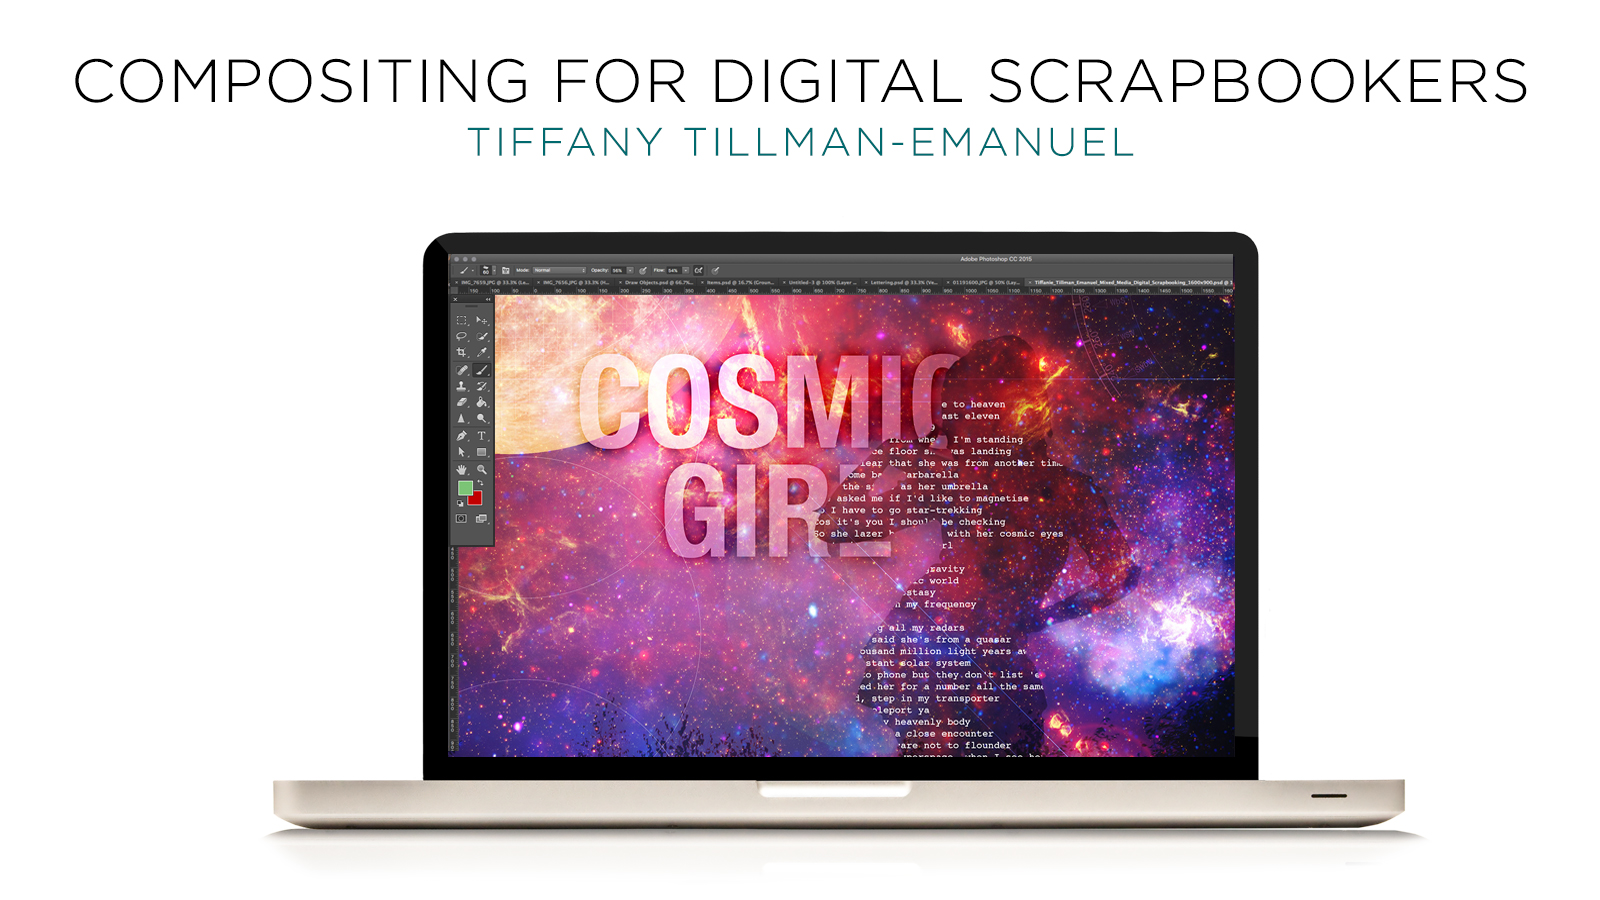 Tiffanie_Tillman_Emanuel_Compositing_Digital_Scrapbooking_TEXT_1600x900